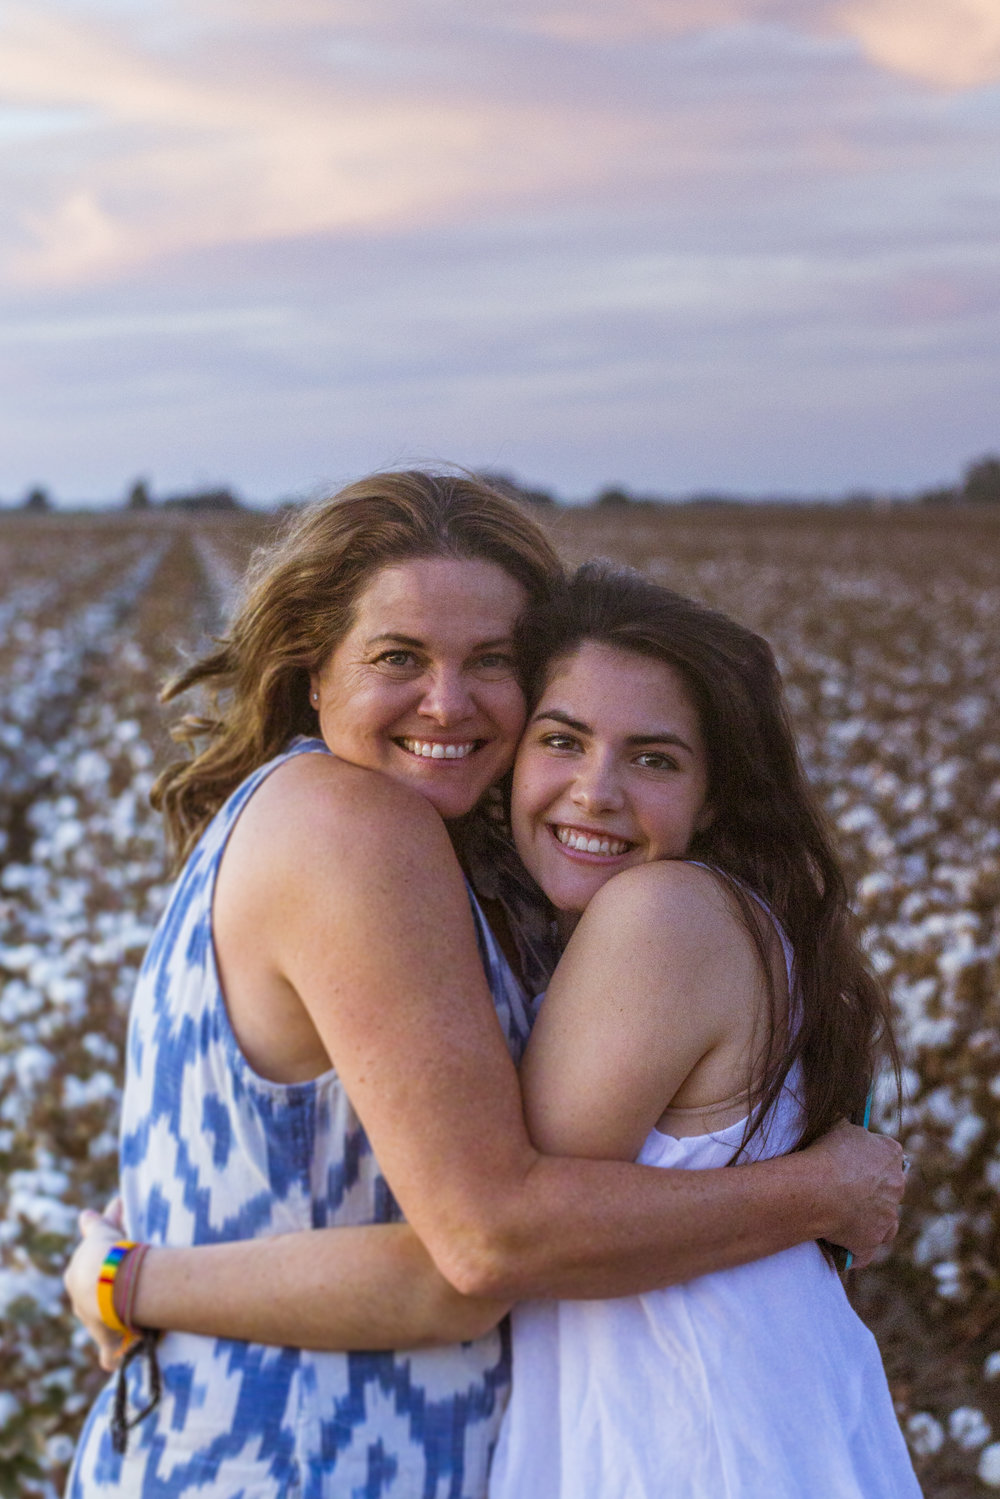 Mini photo session in a California with a mom and teenage daughter. Photographed by Lillian Short in September 2017 south of Fresno.